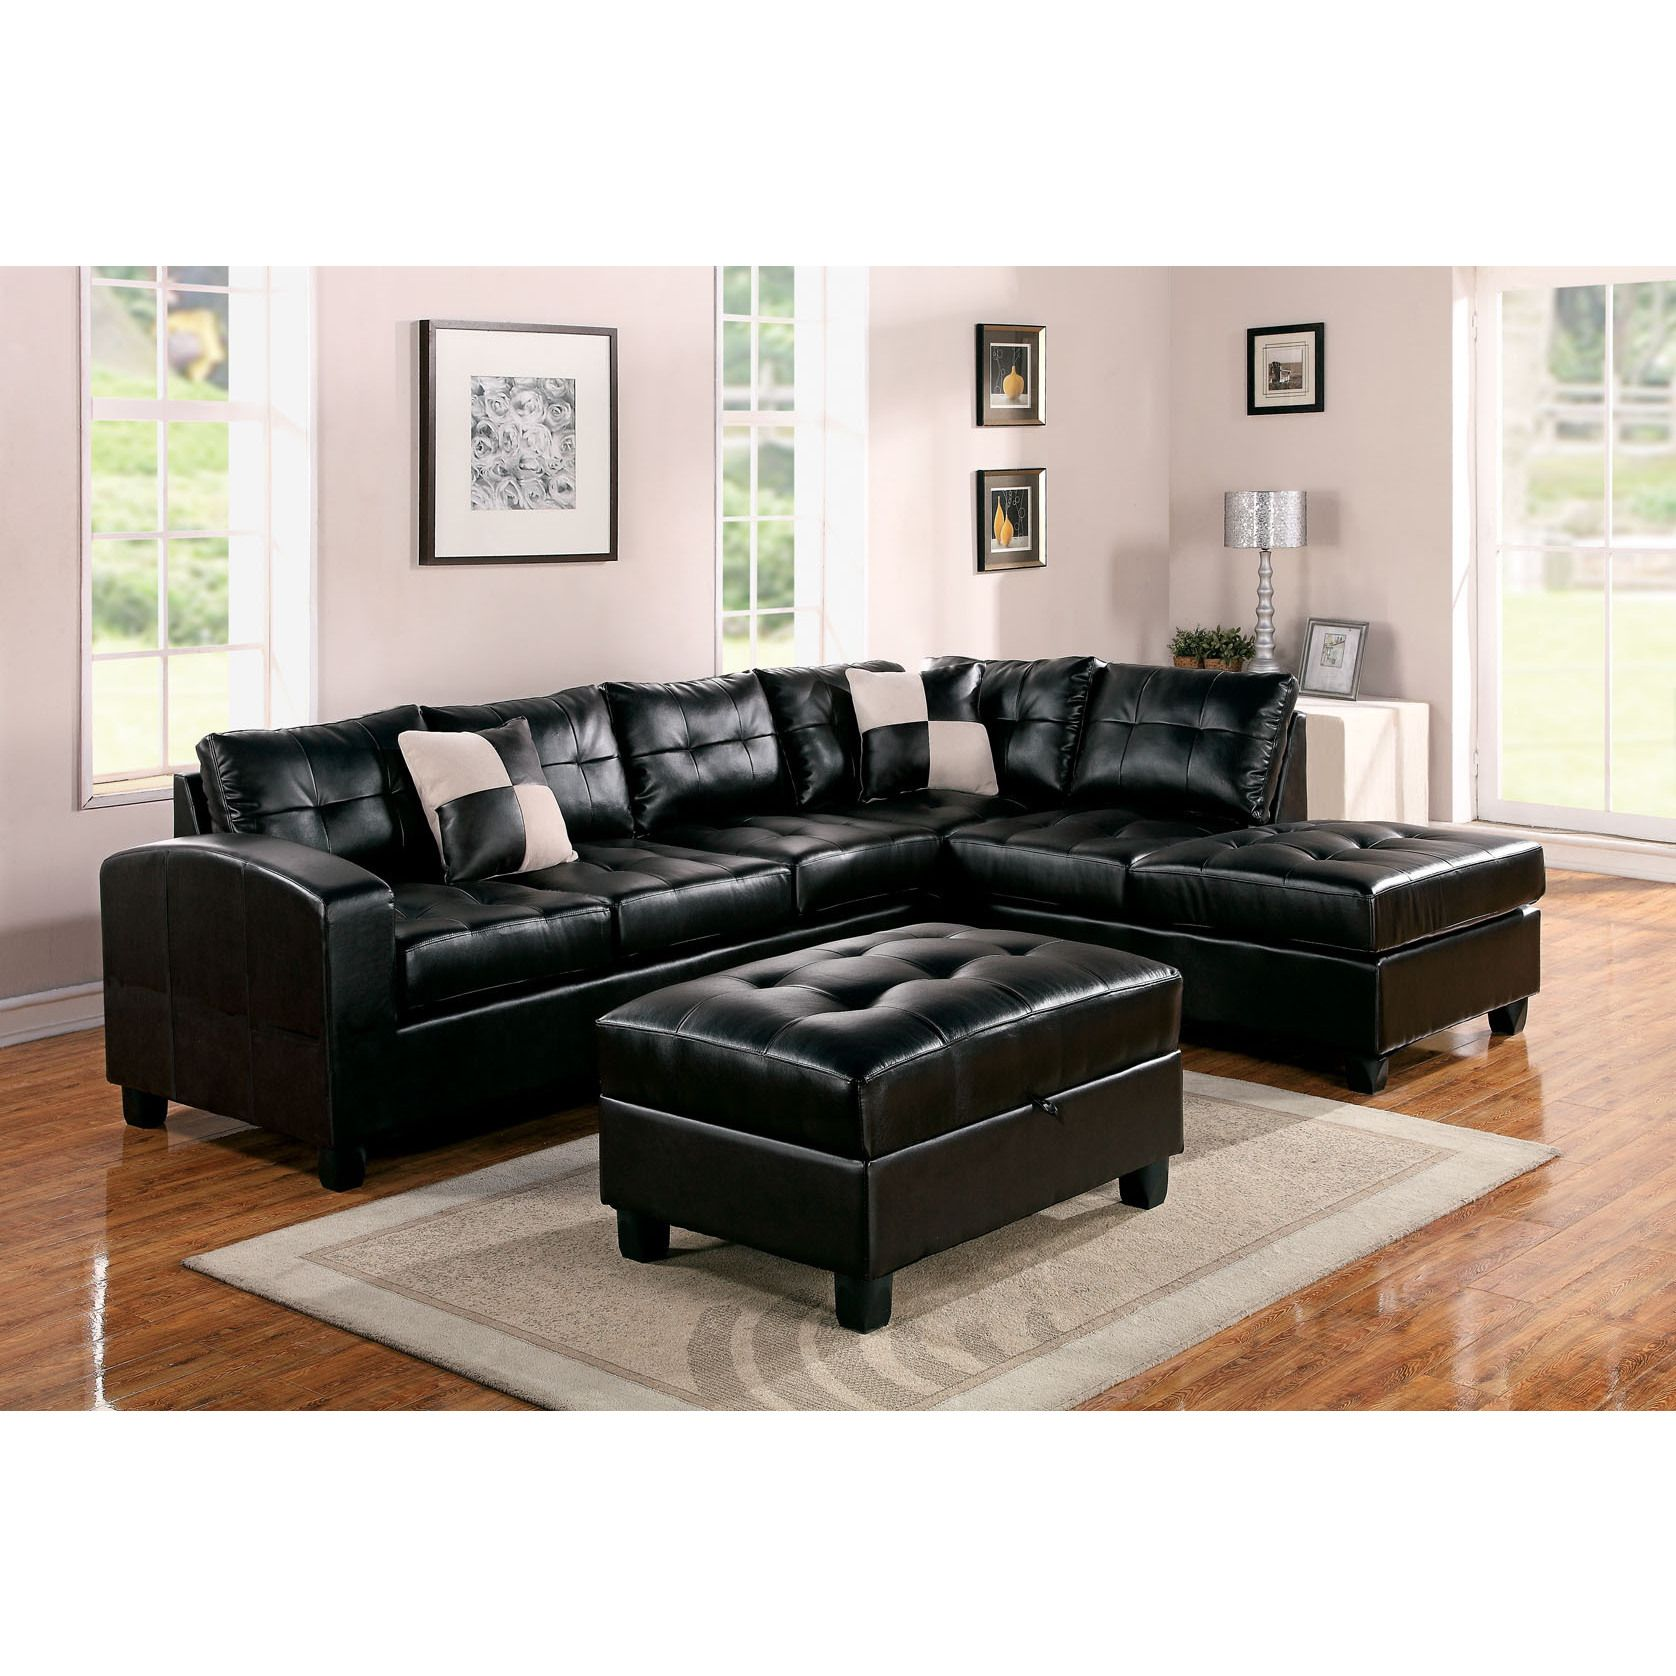 Kiva Bonded Leather Match Sectional Sofa by Acme